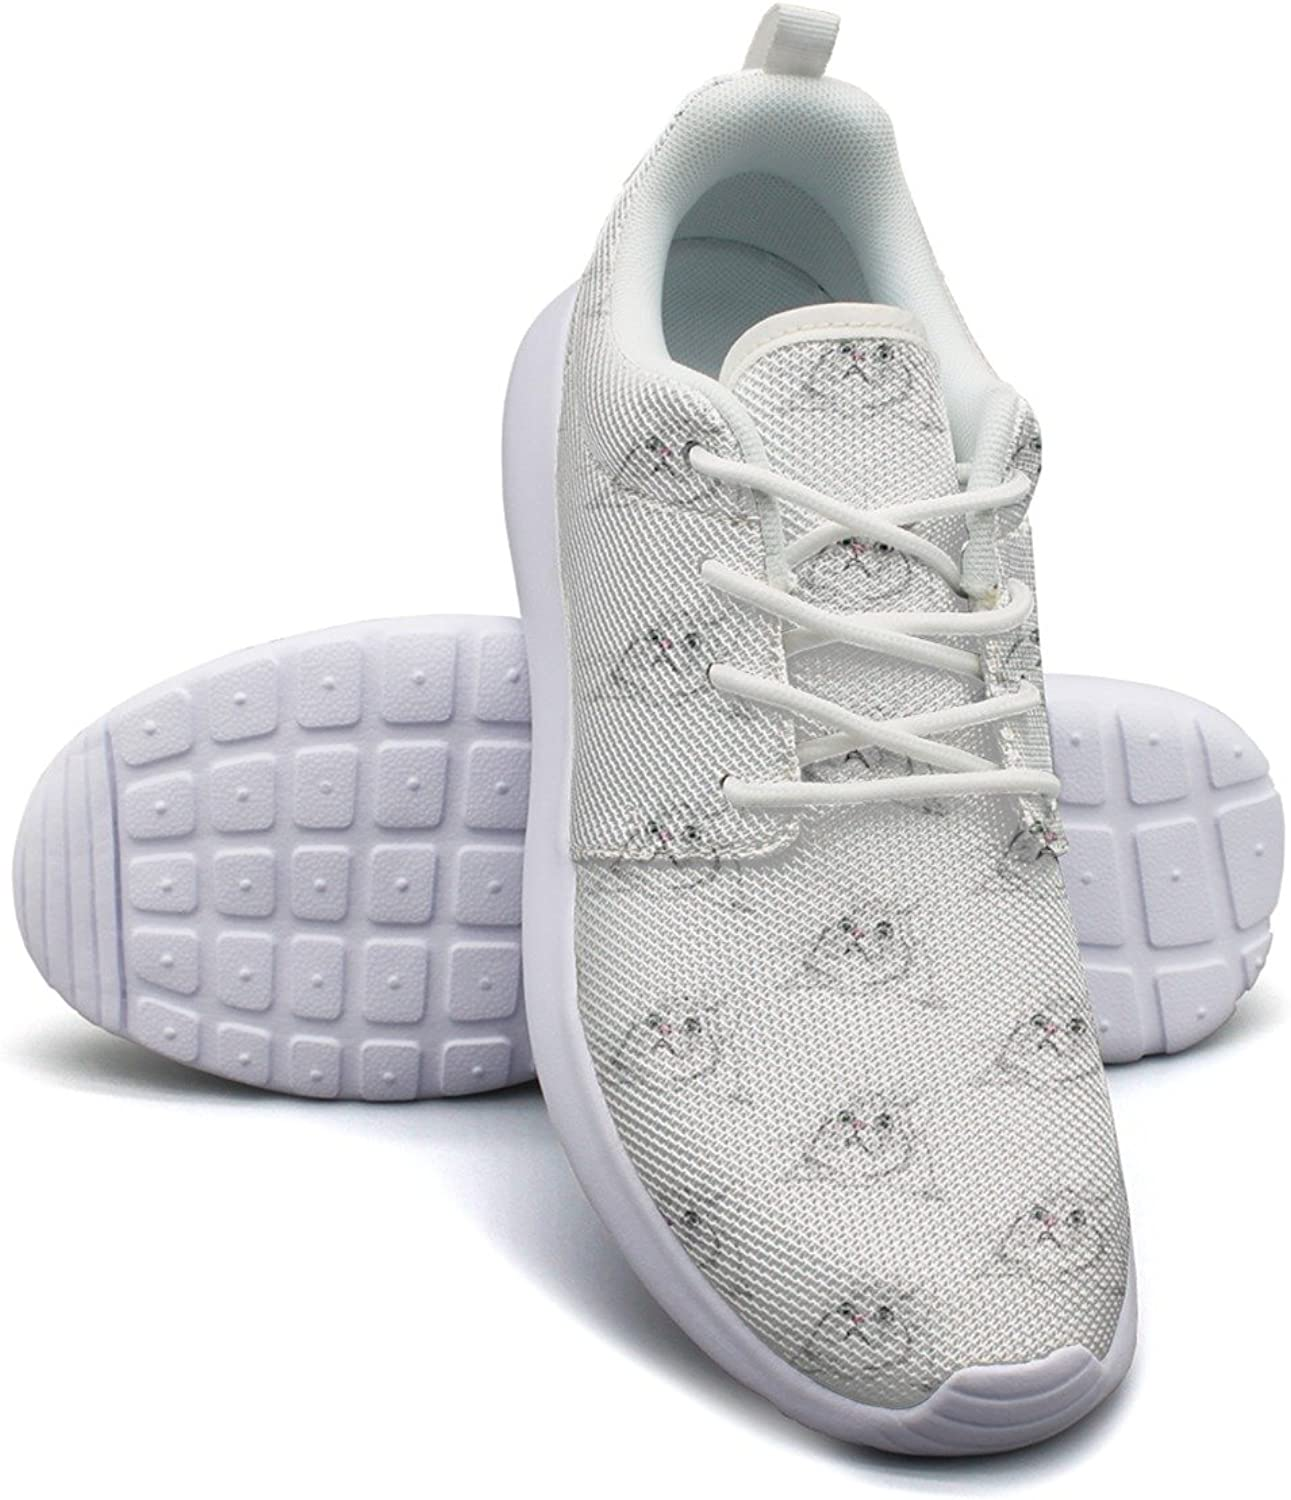 Surprised Cute Cat Face White Background Women's Lightweight Mesh Basketball Sneakers Comfortable Walking shoes